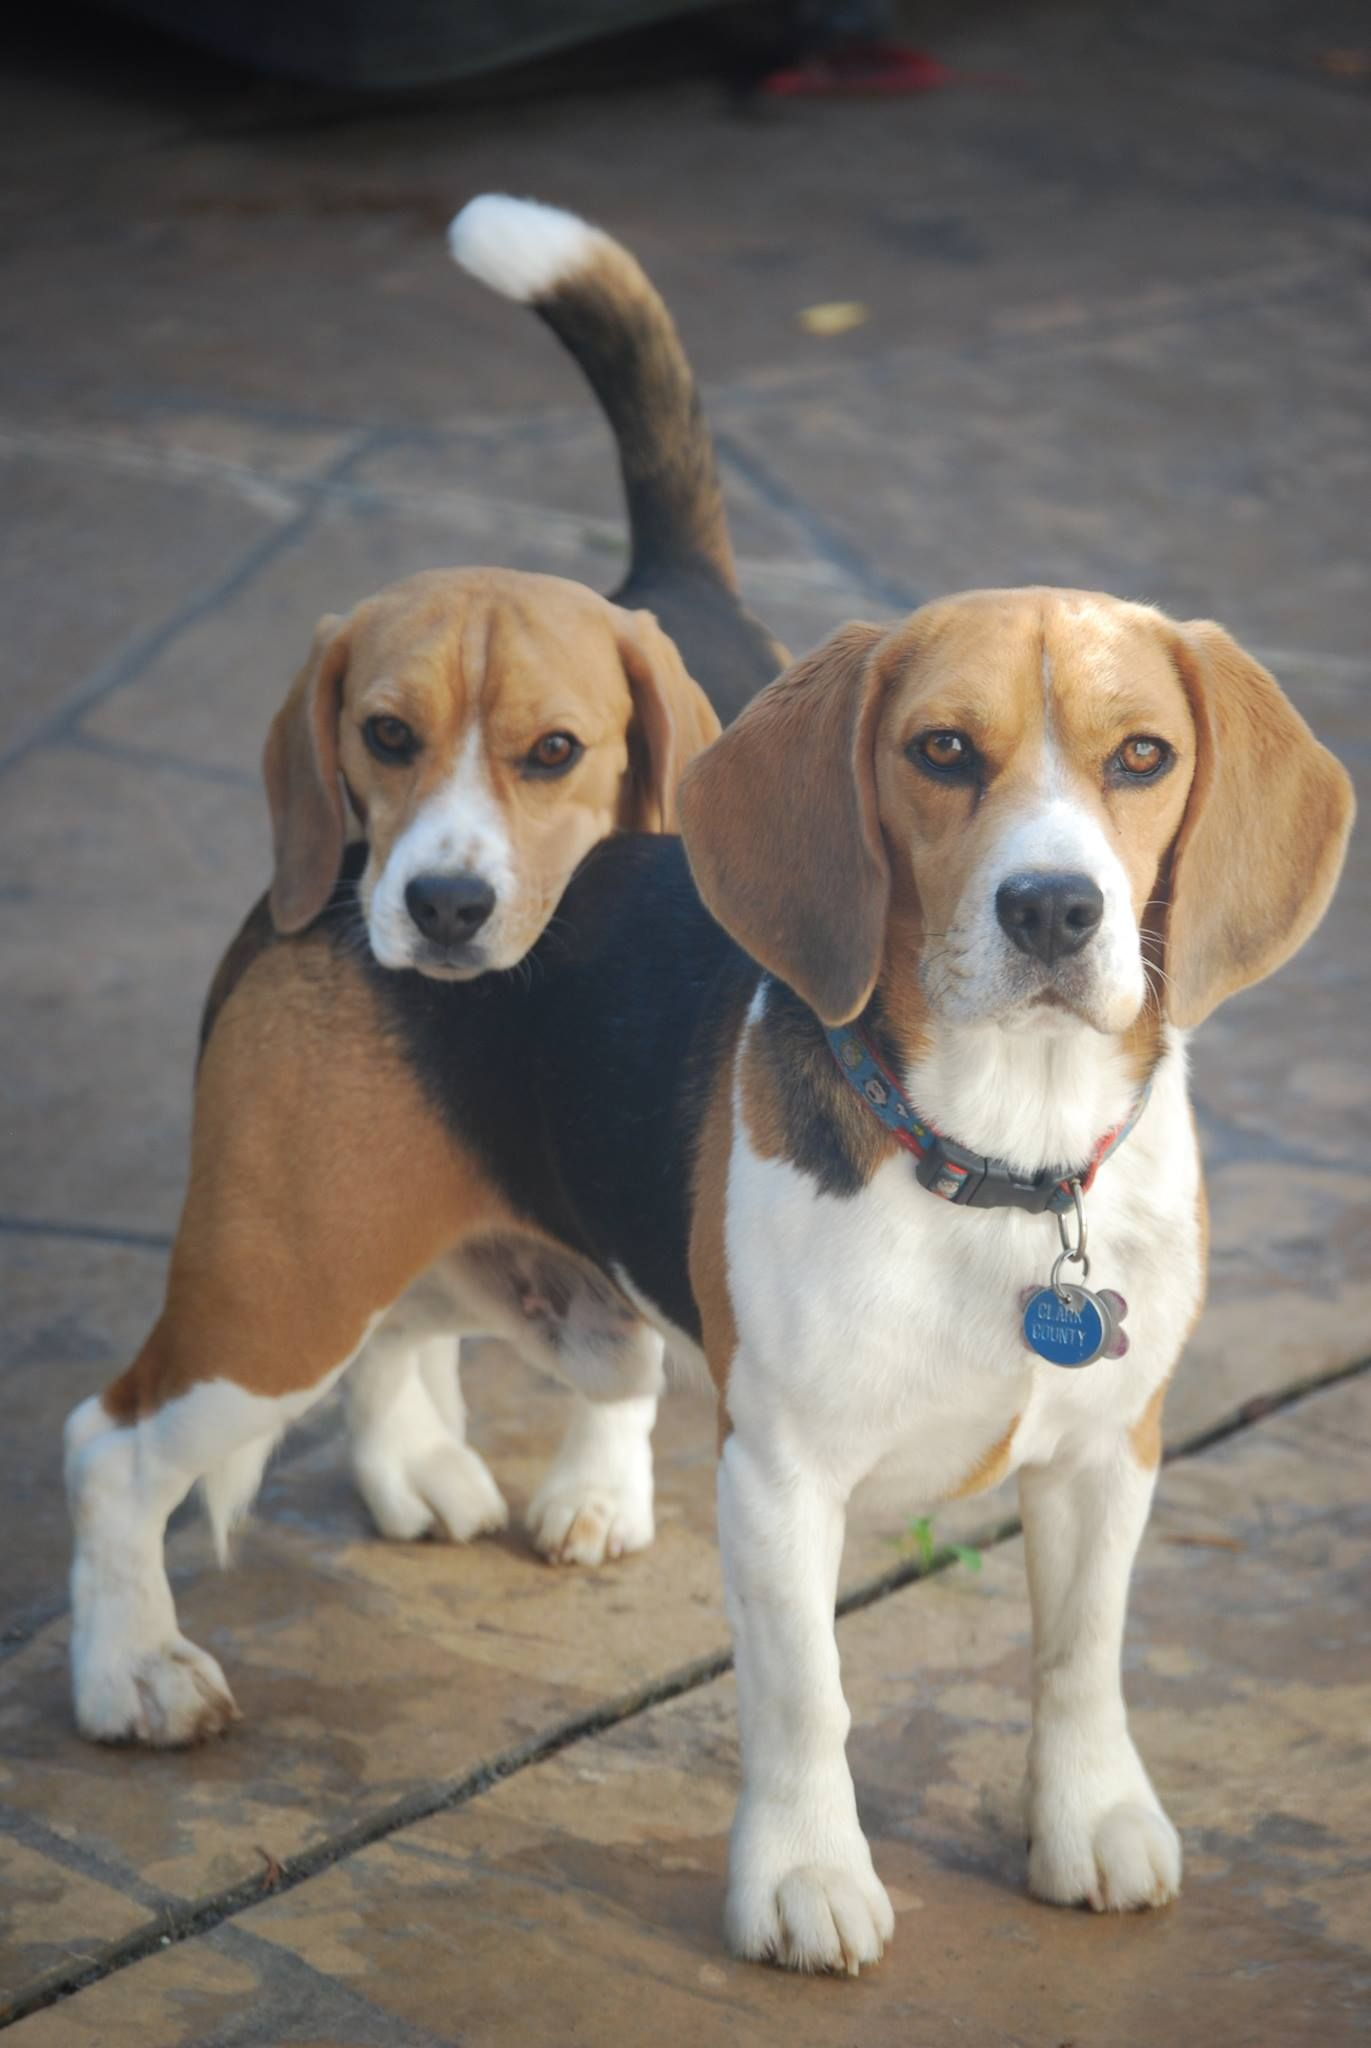 Types Of Beagles According To The American Kennel Club There Are Only Two Different Recognized Types Of Beagles Beagle Puppy Beagle Dog Kittens And Puppies